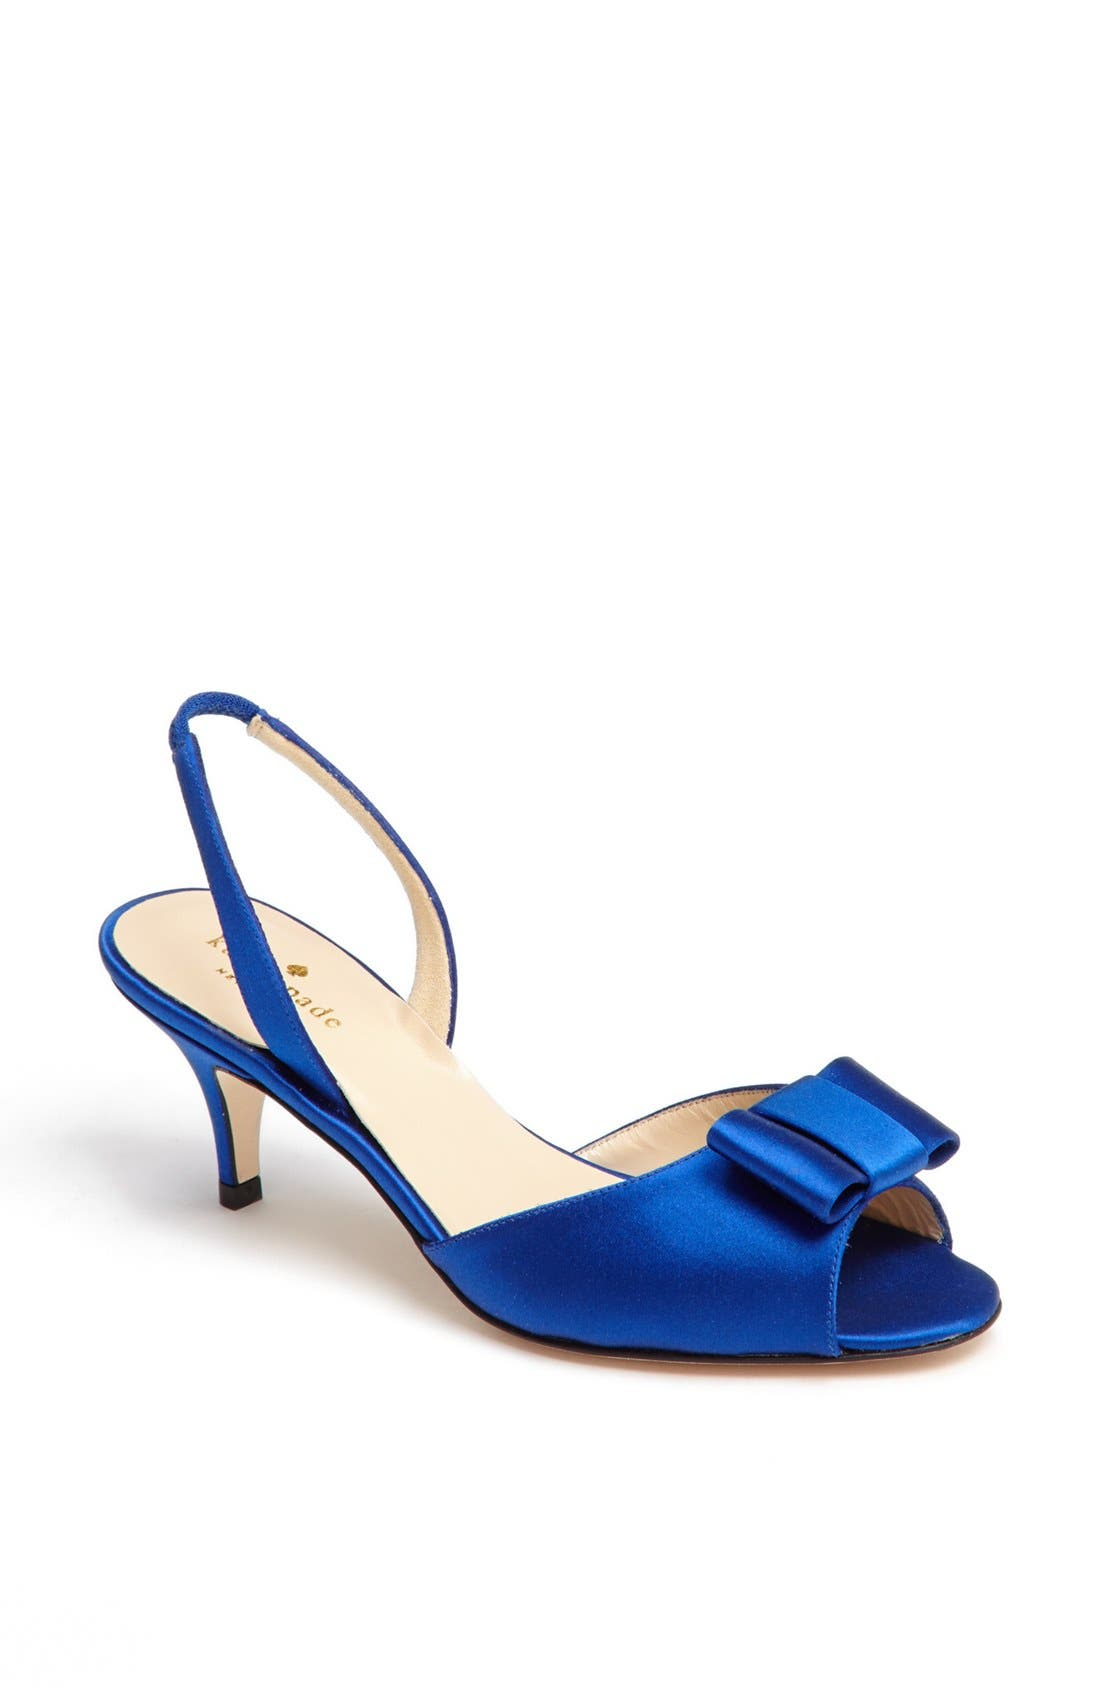 Alternate Image 1 Selected - kate spade new york 'emelia' sandal (Women)